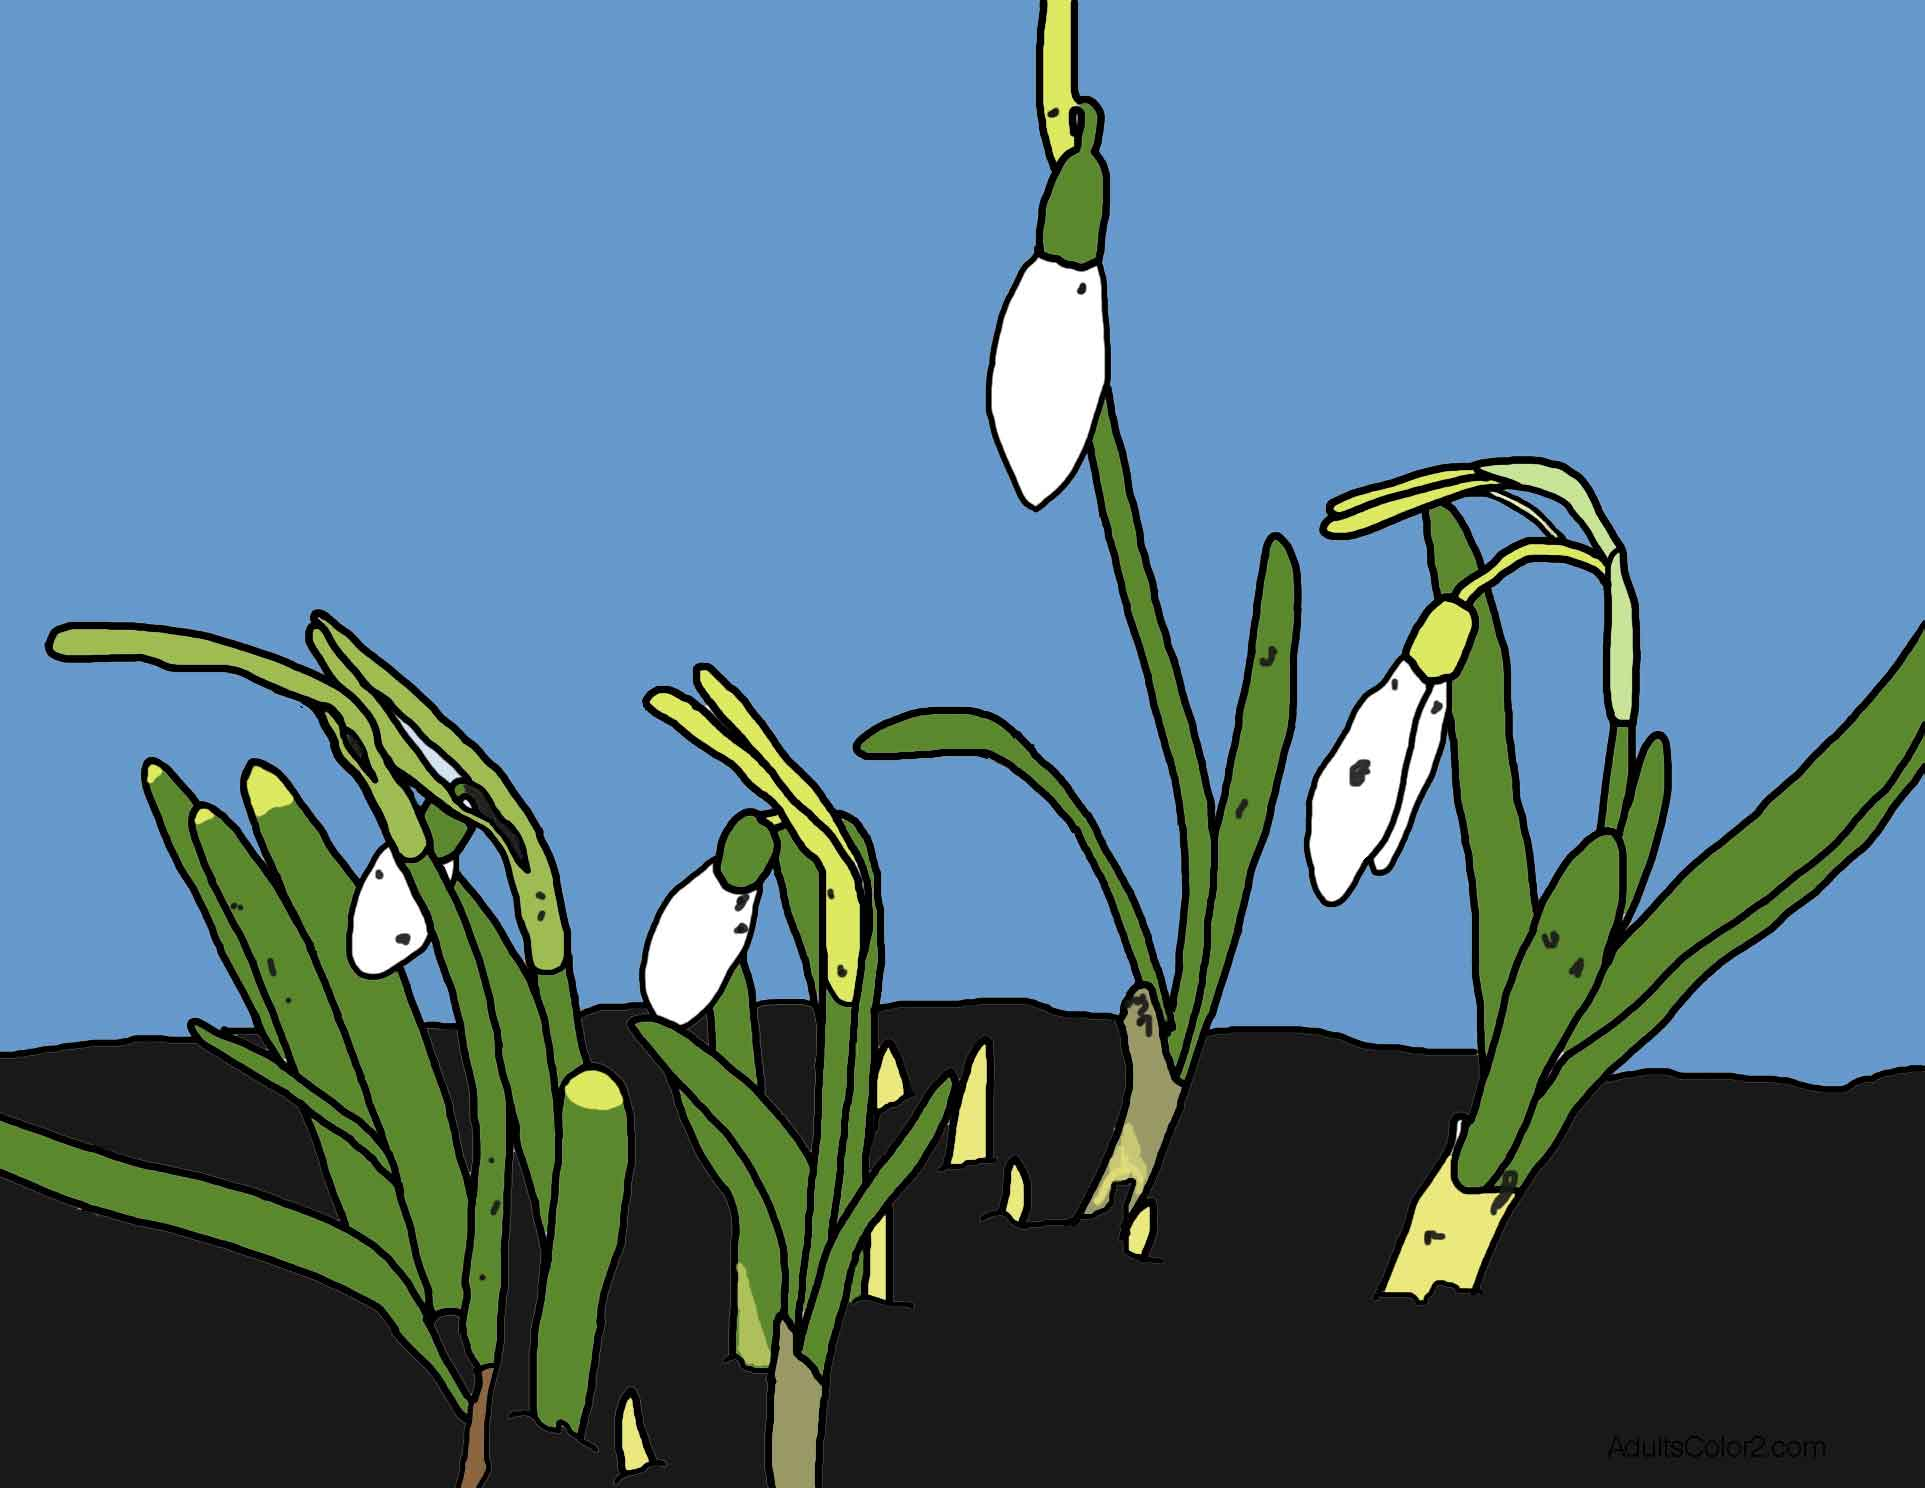 Snowdrop flowers blooming in late winter before any other plant.